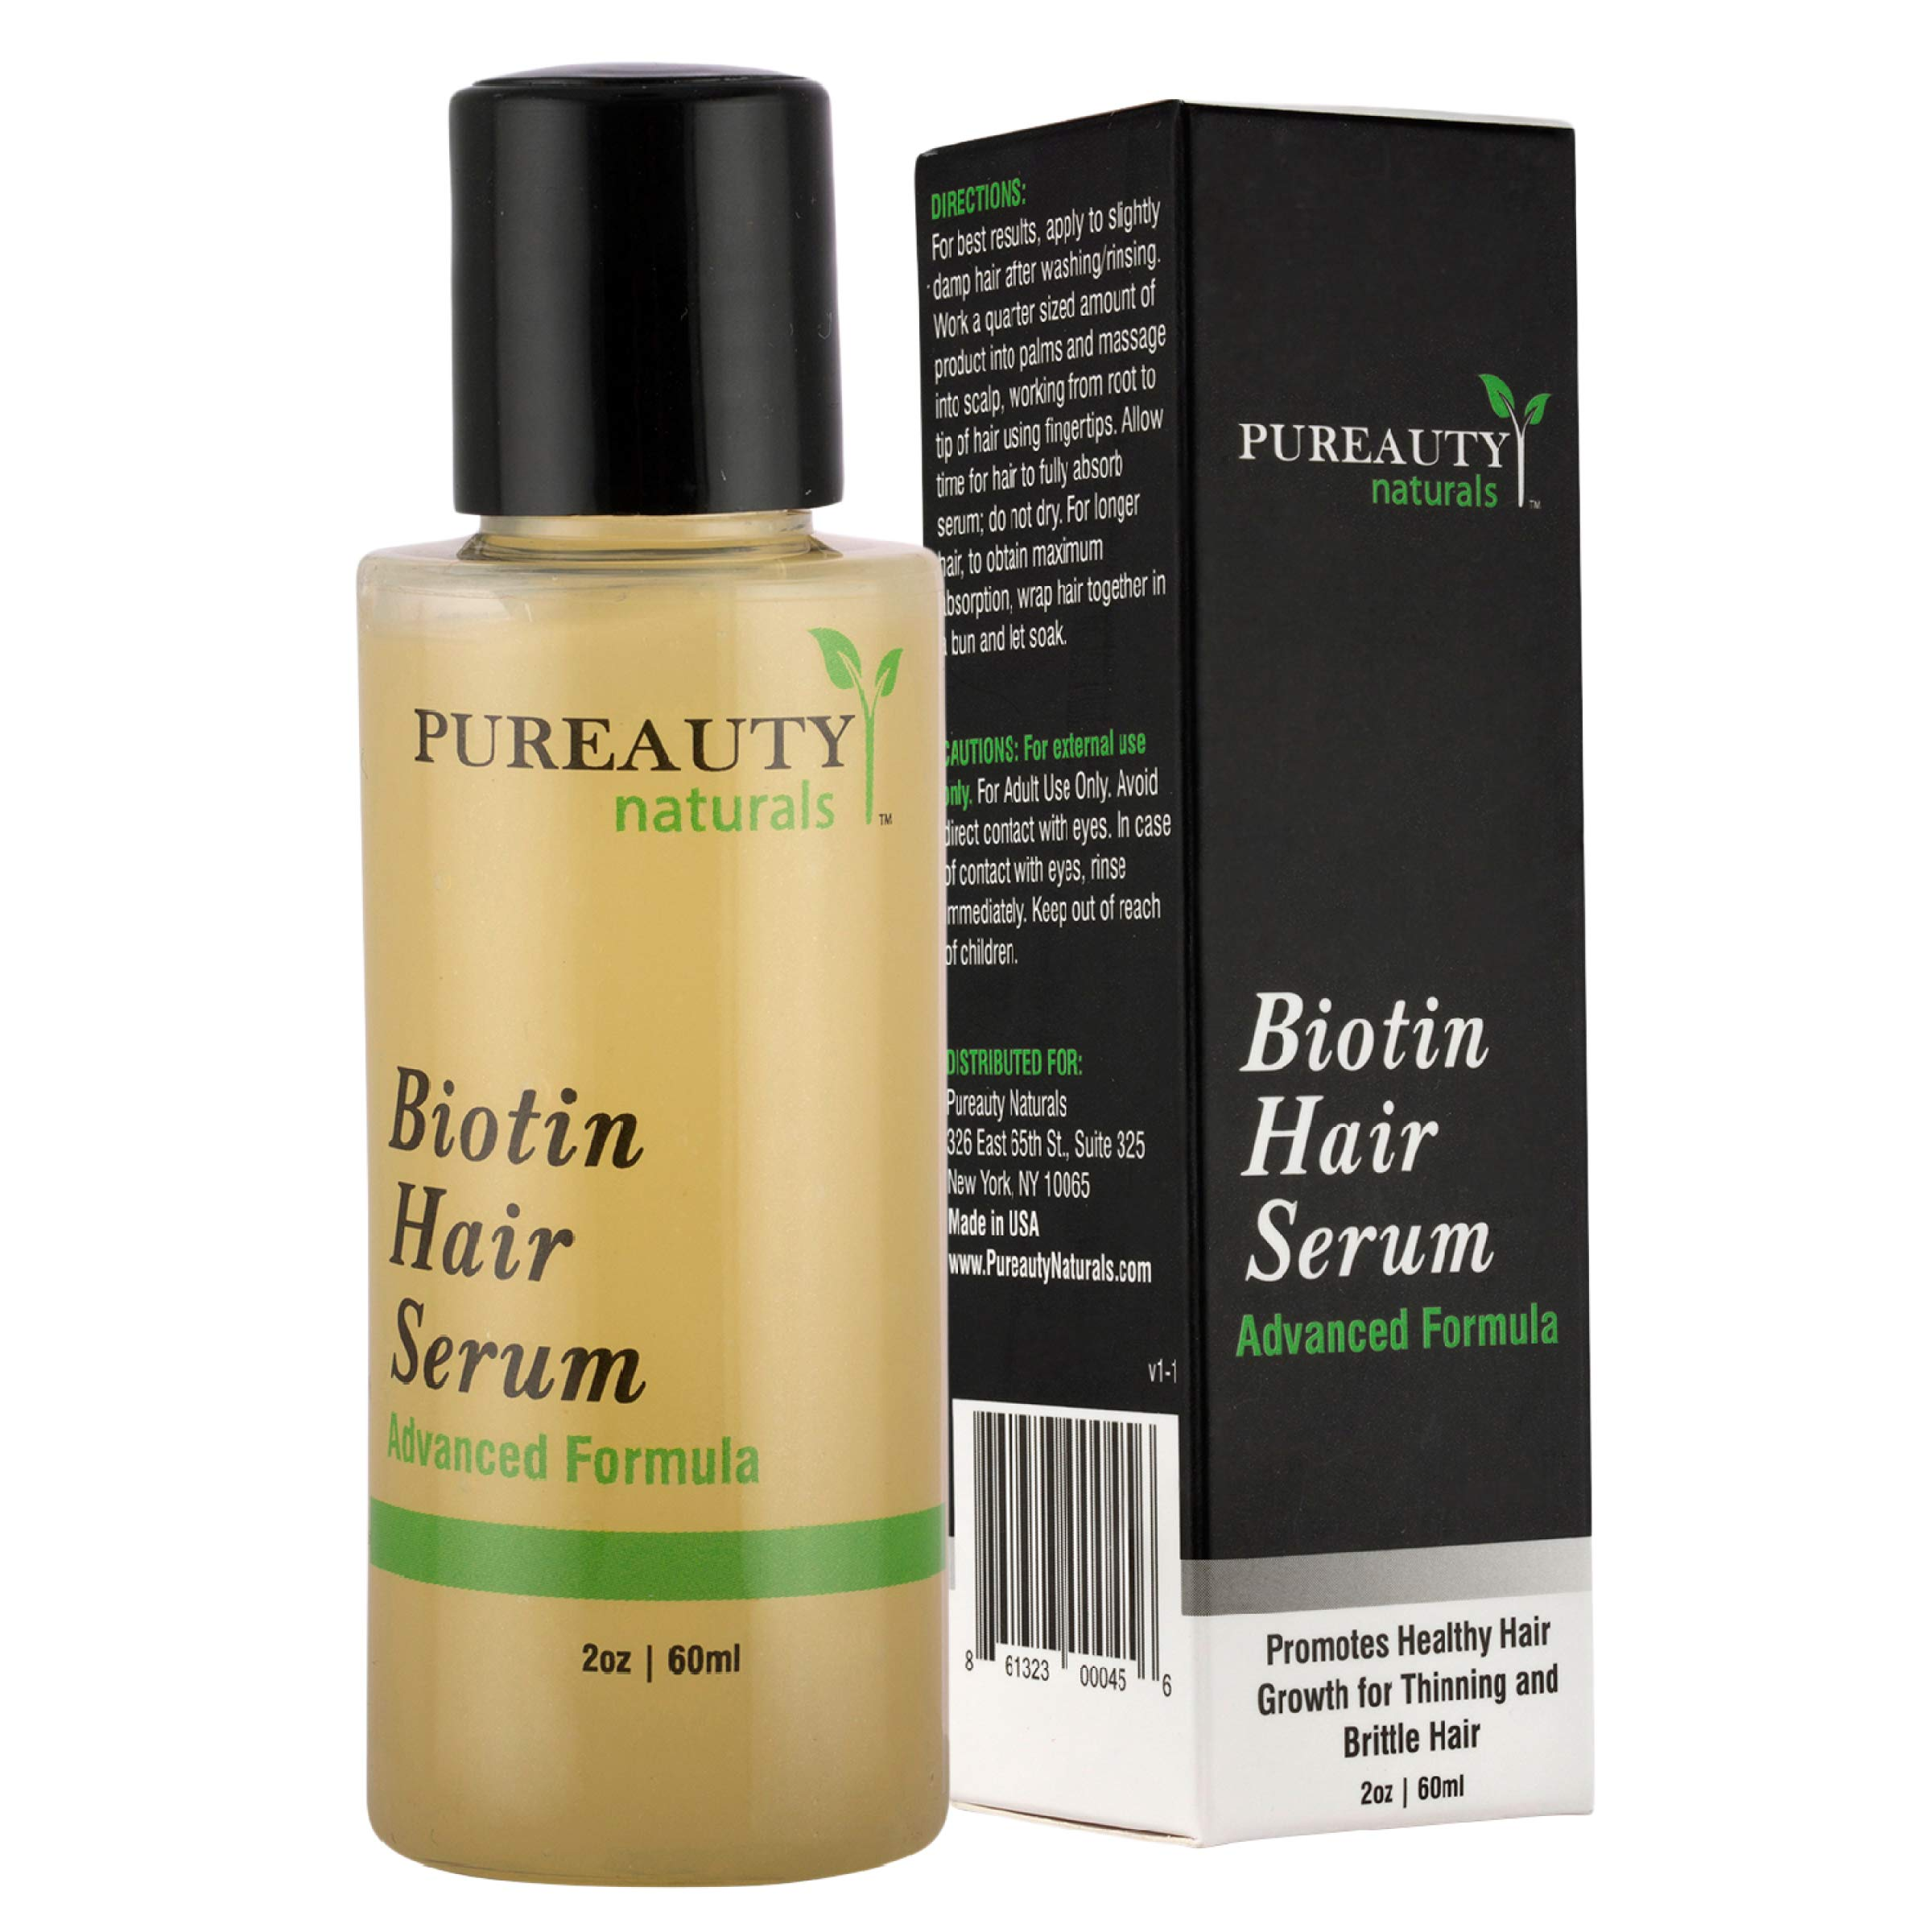 Biotin Hair Growth Serum Advanced Topical Formula To Help Grow Healthy, Strong Hair Suitable for Men and Women of All Hair Types Hair Loss Support By Pureauty Naturals by Meraz Pureauty Naturals